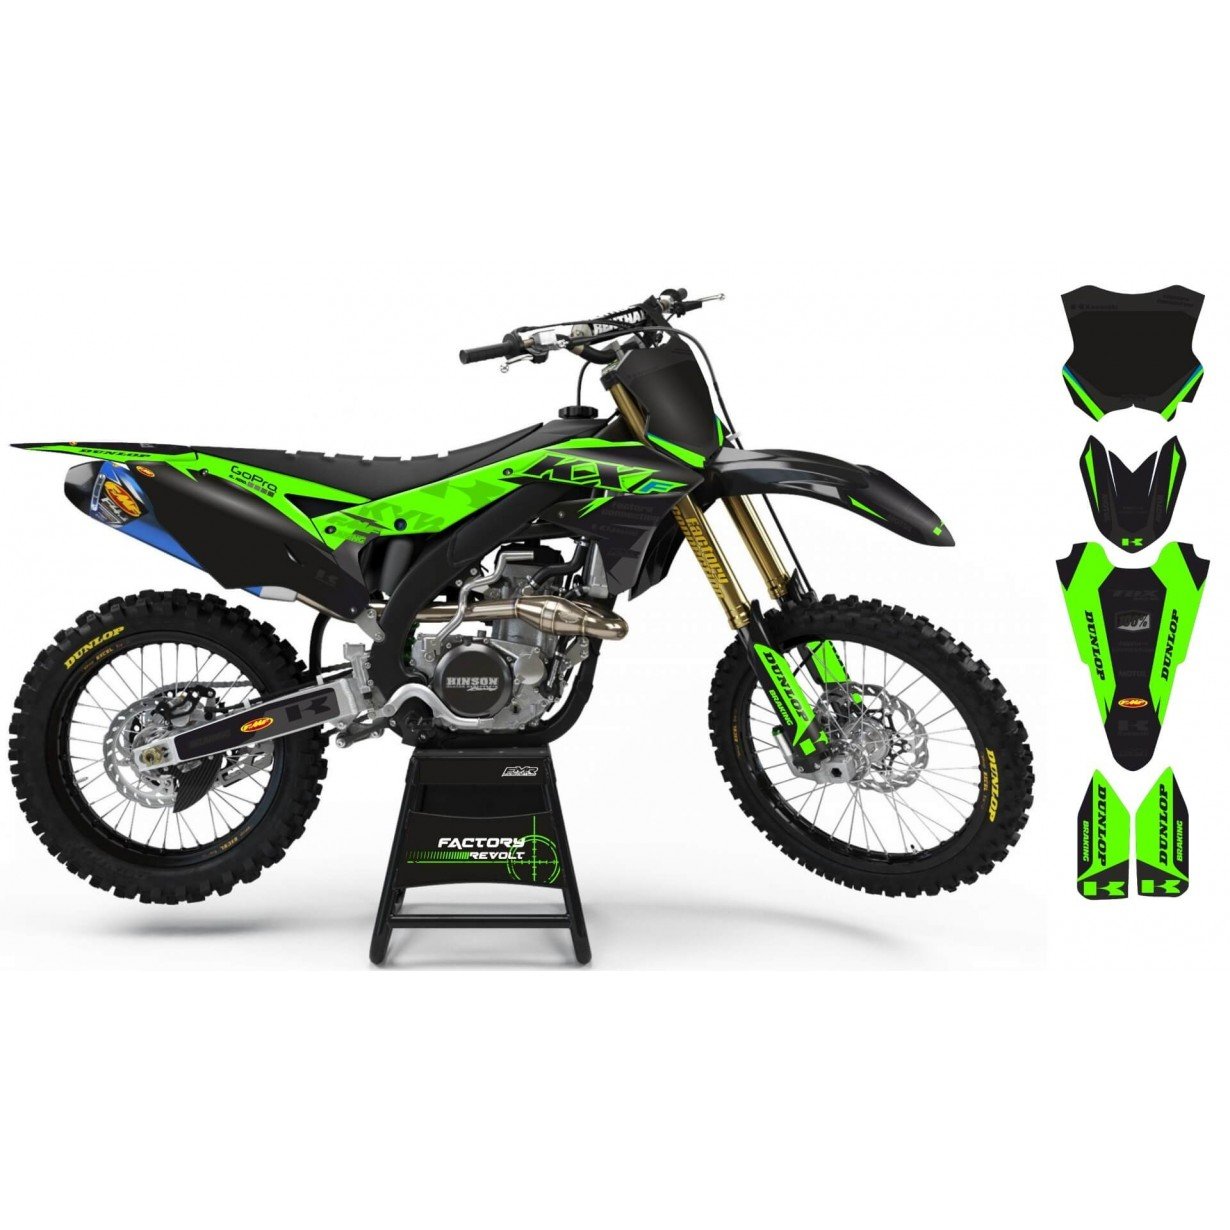 Kit déco Perso KAWASAKI Factory Revolt A26B3 black/green